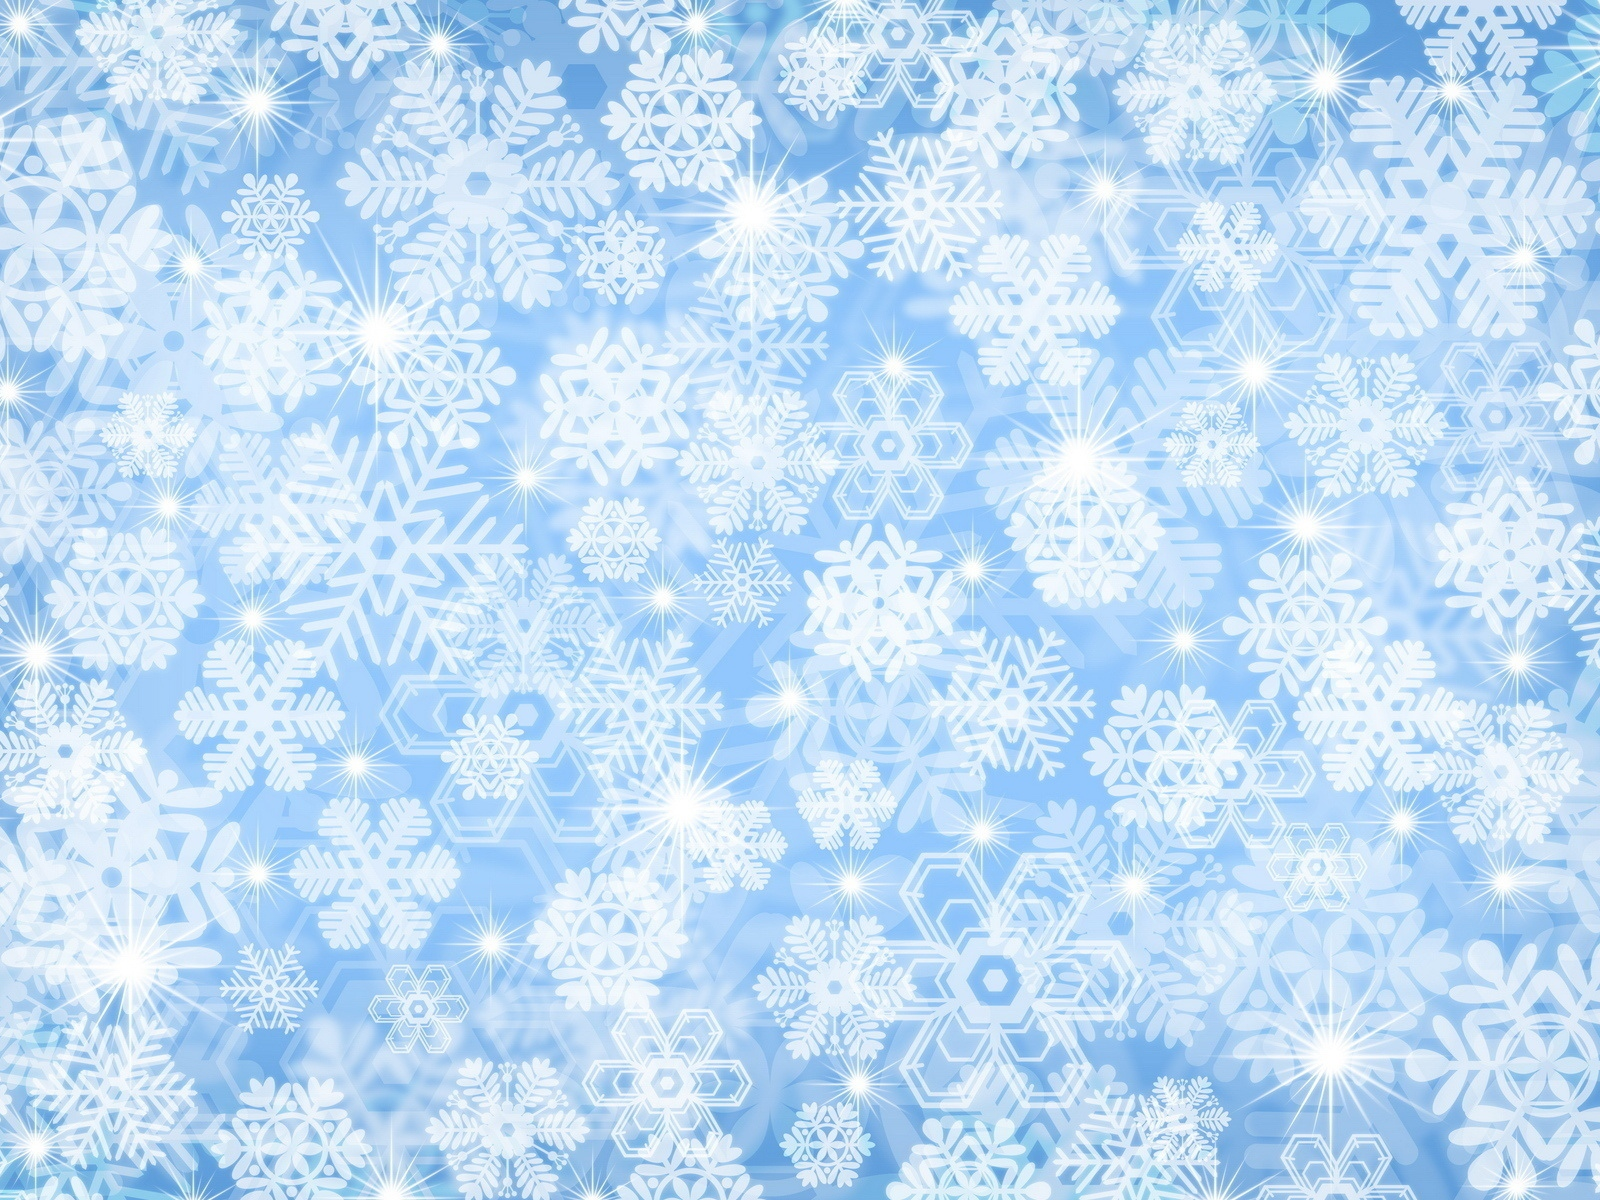 Cool snowflake background 18291 1600x1200 px for Where to get wallpaper